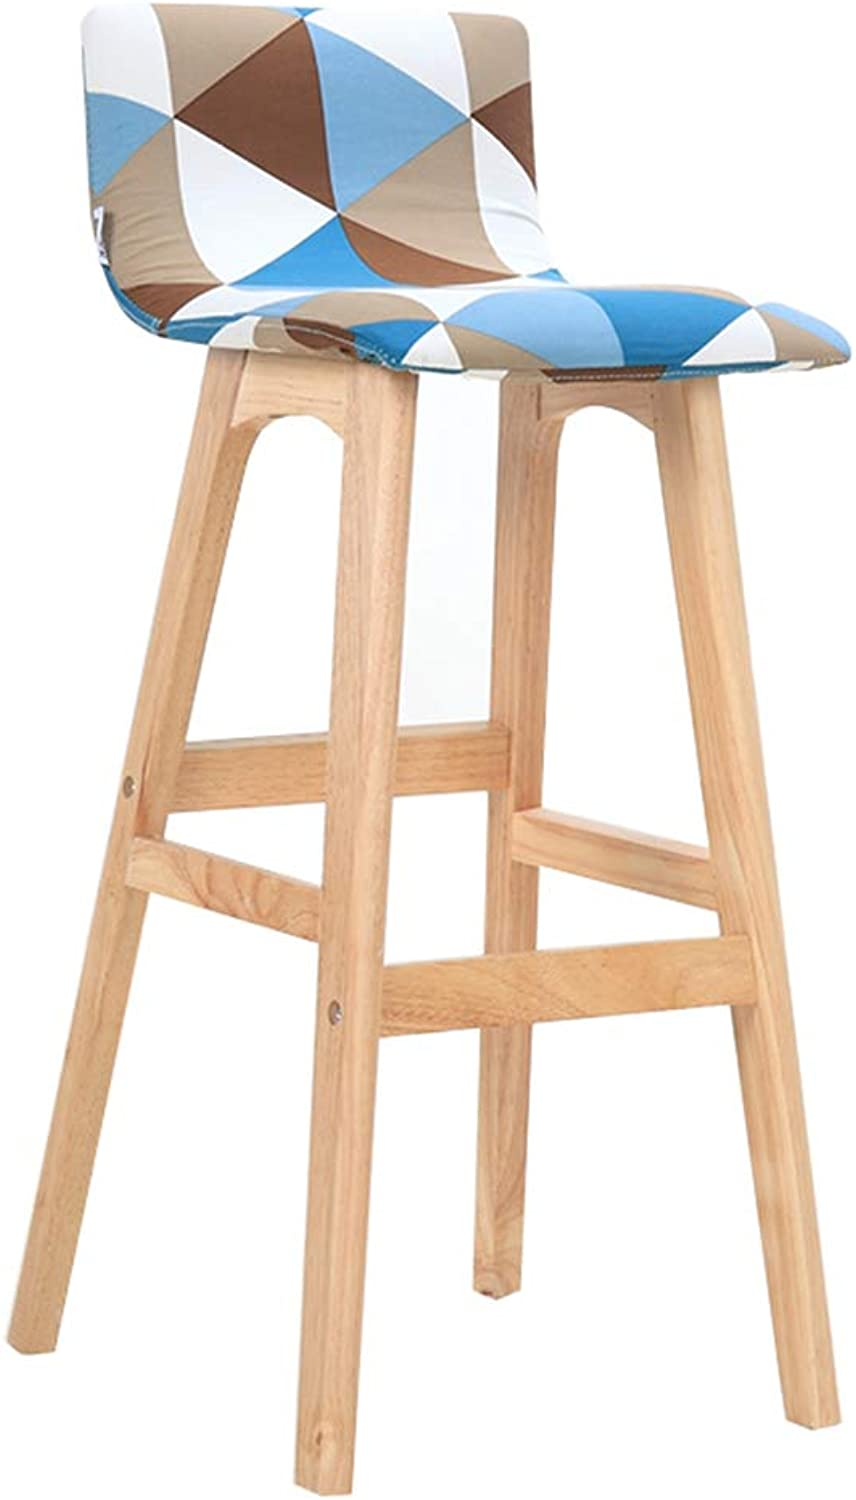 Solid Wood Bar Stool Bar Stool - Backrest High, Original Wood Frame, Rubik's Cube, Cotton Linen, Modern Front Kitchen, Dining Room,